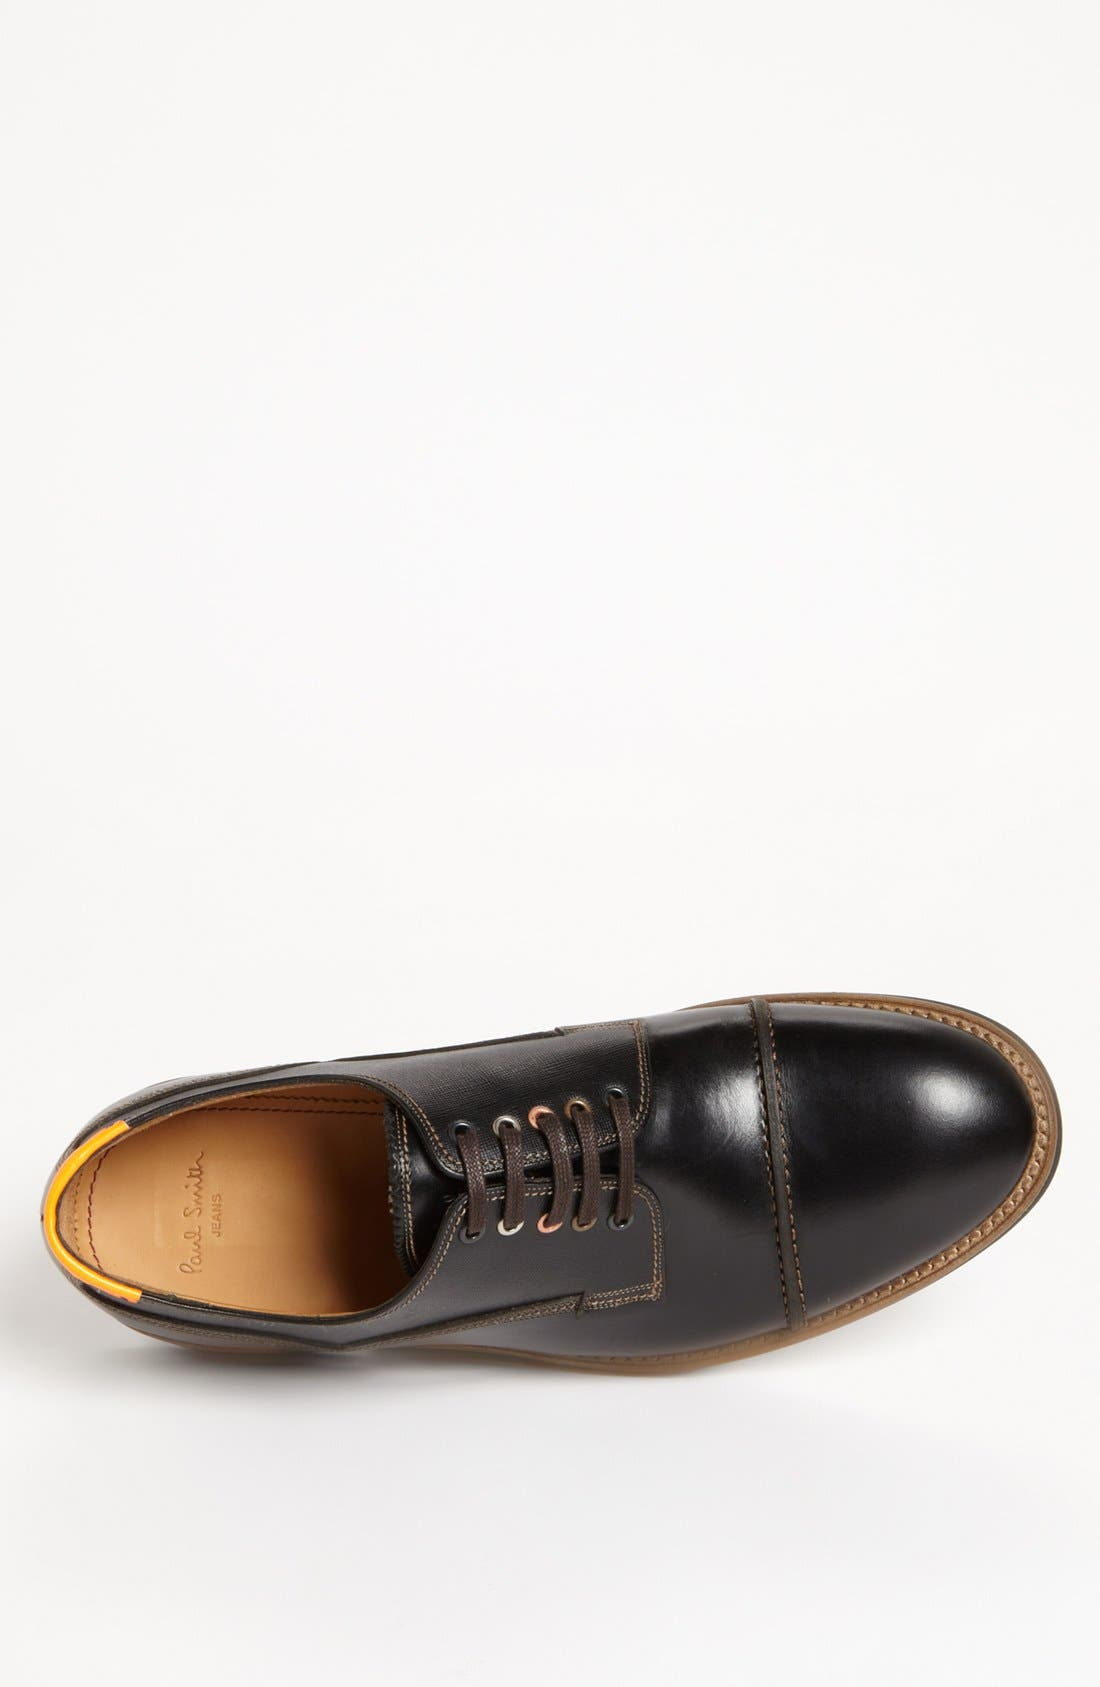 Alternate Image 3  - Paul Smith 'Skull' Cap Toe Derby